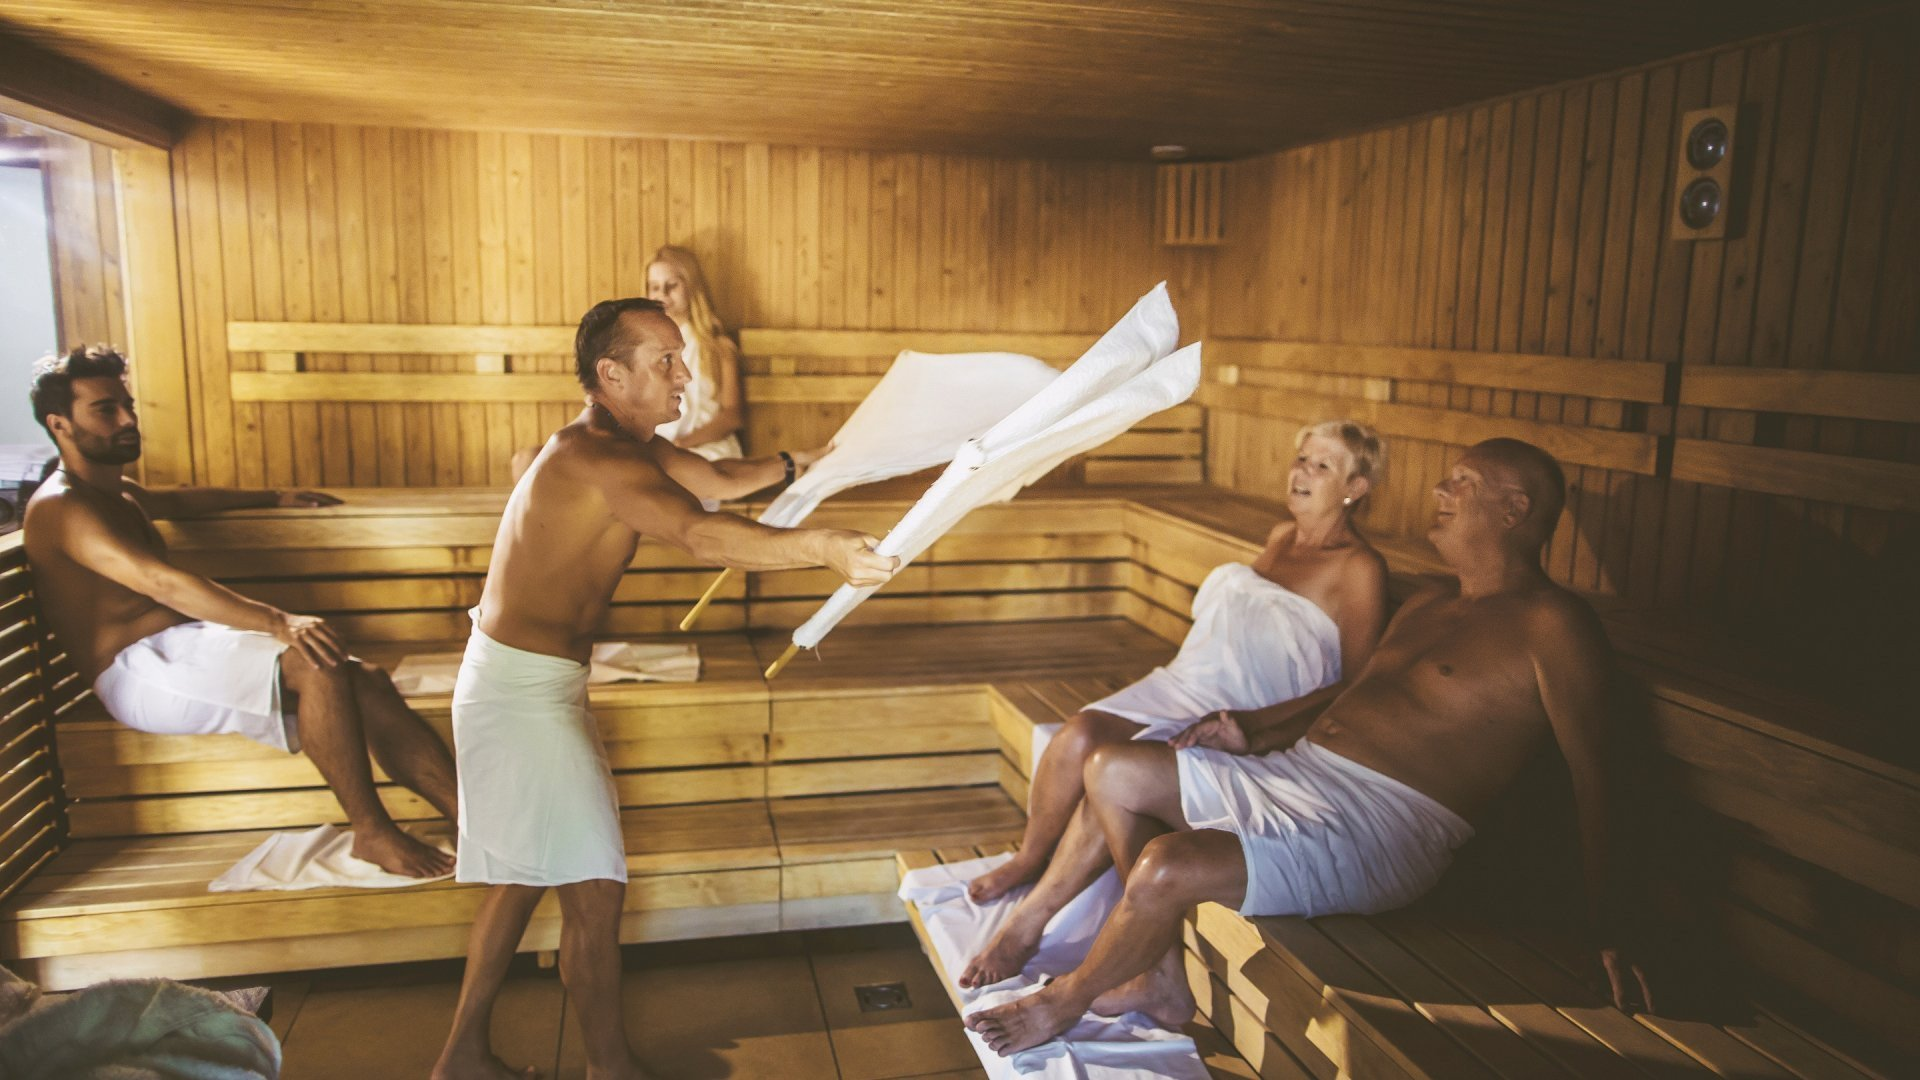 https://www.visitbuk.hu/media/thumbs/sa/un/ad/sauna-day-in-bukfurdo-thermal-spa-499351f3-569016.jpg